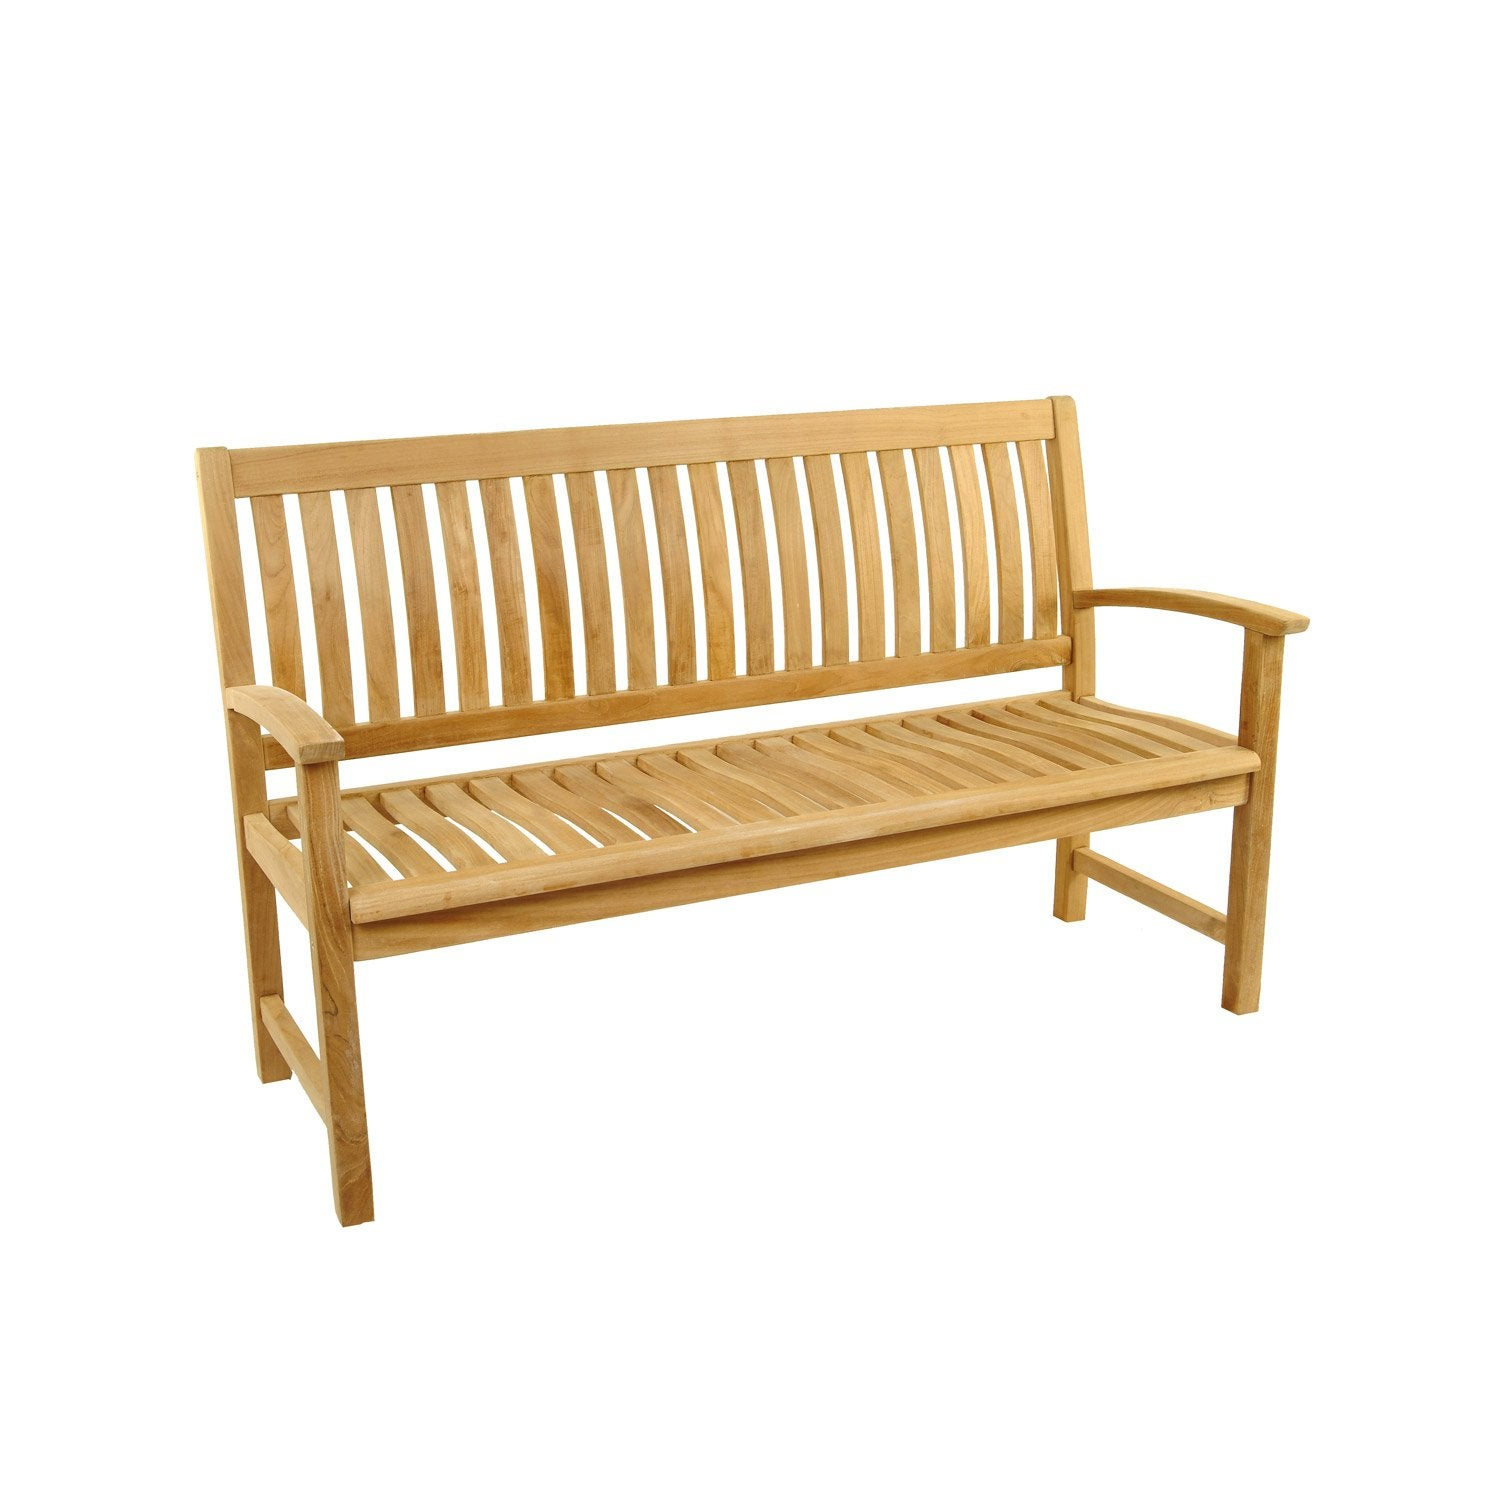 Banc 3 places de jardin en bois azur naturelle leroy merlin for Banco jardin leroy merlin